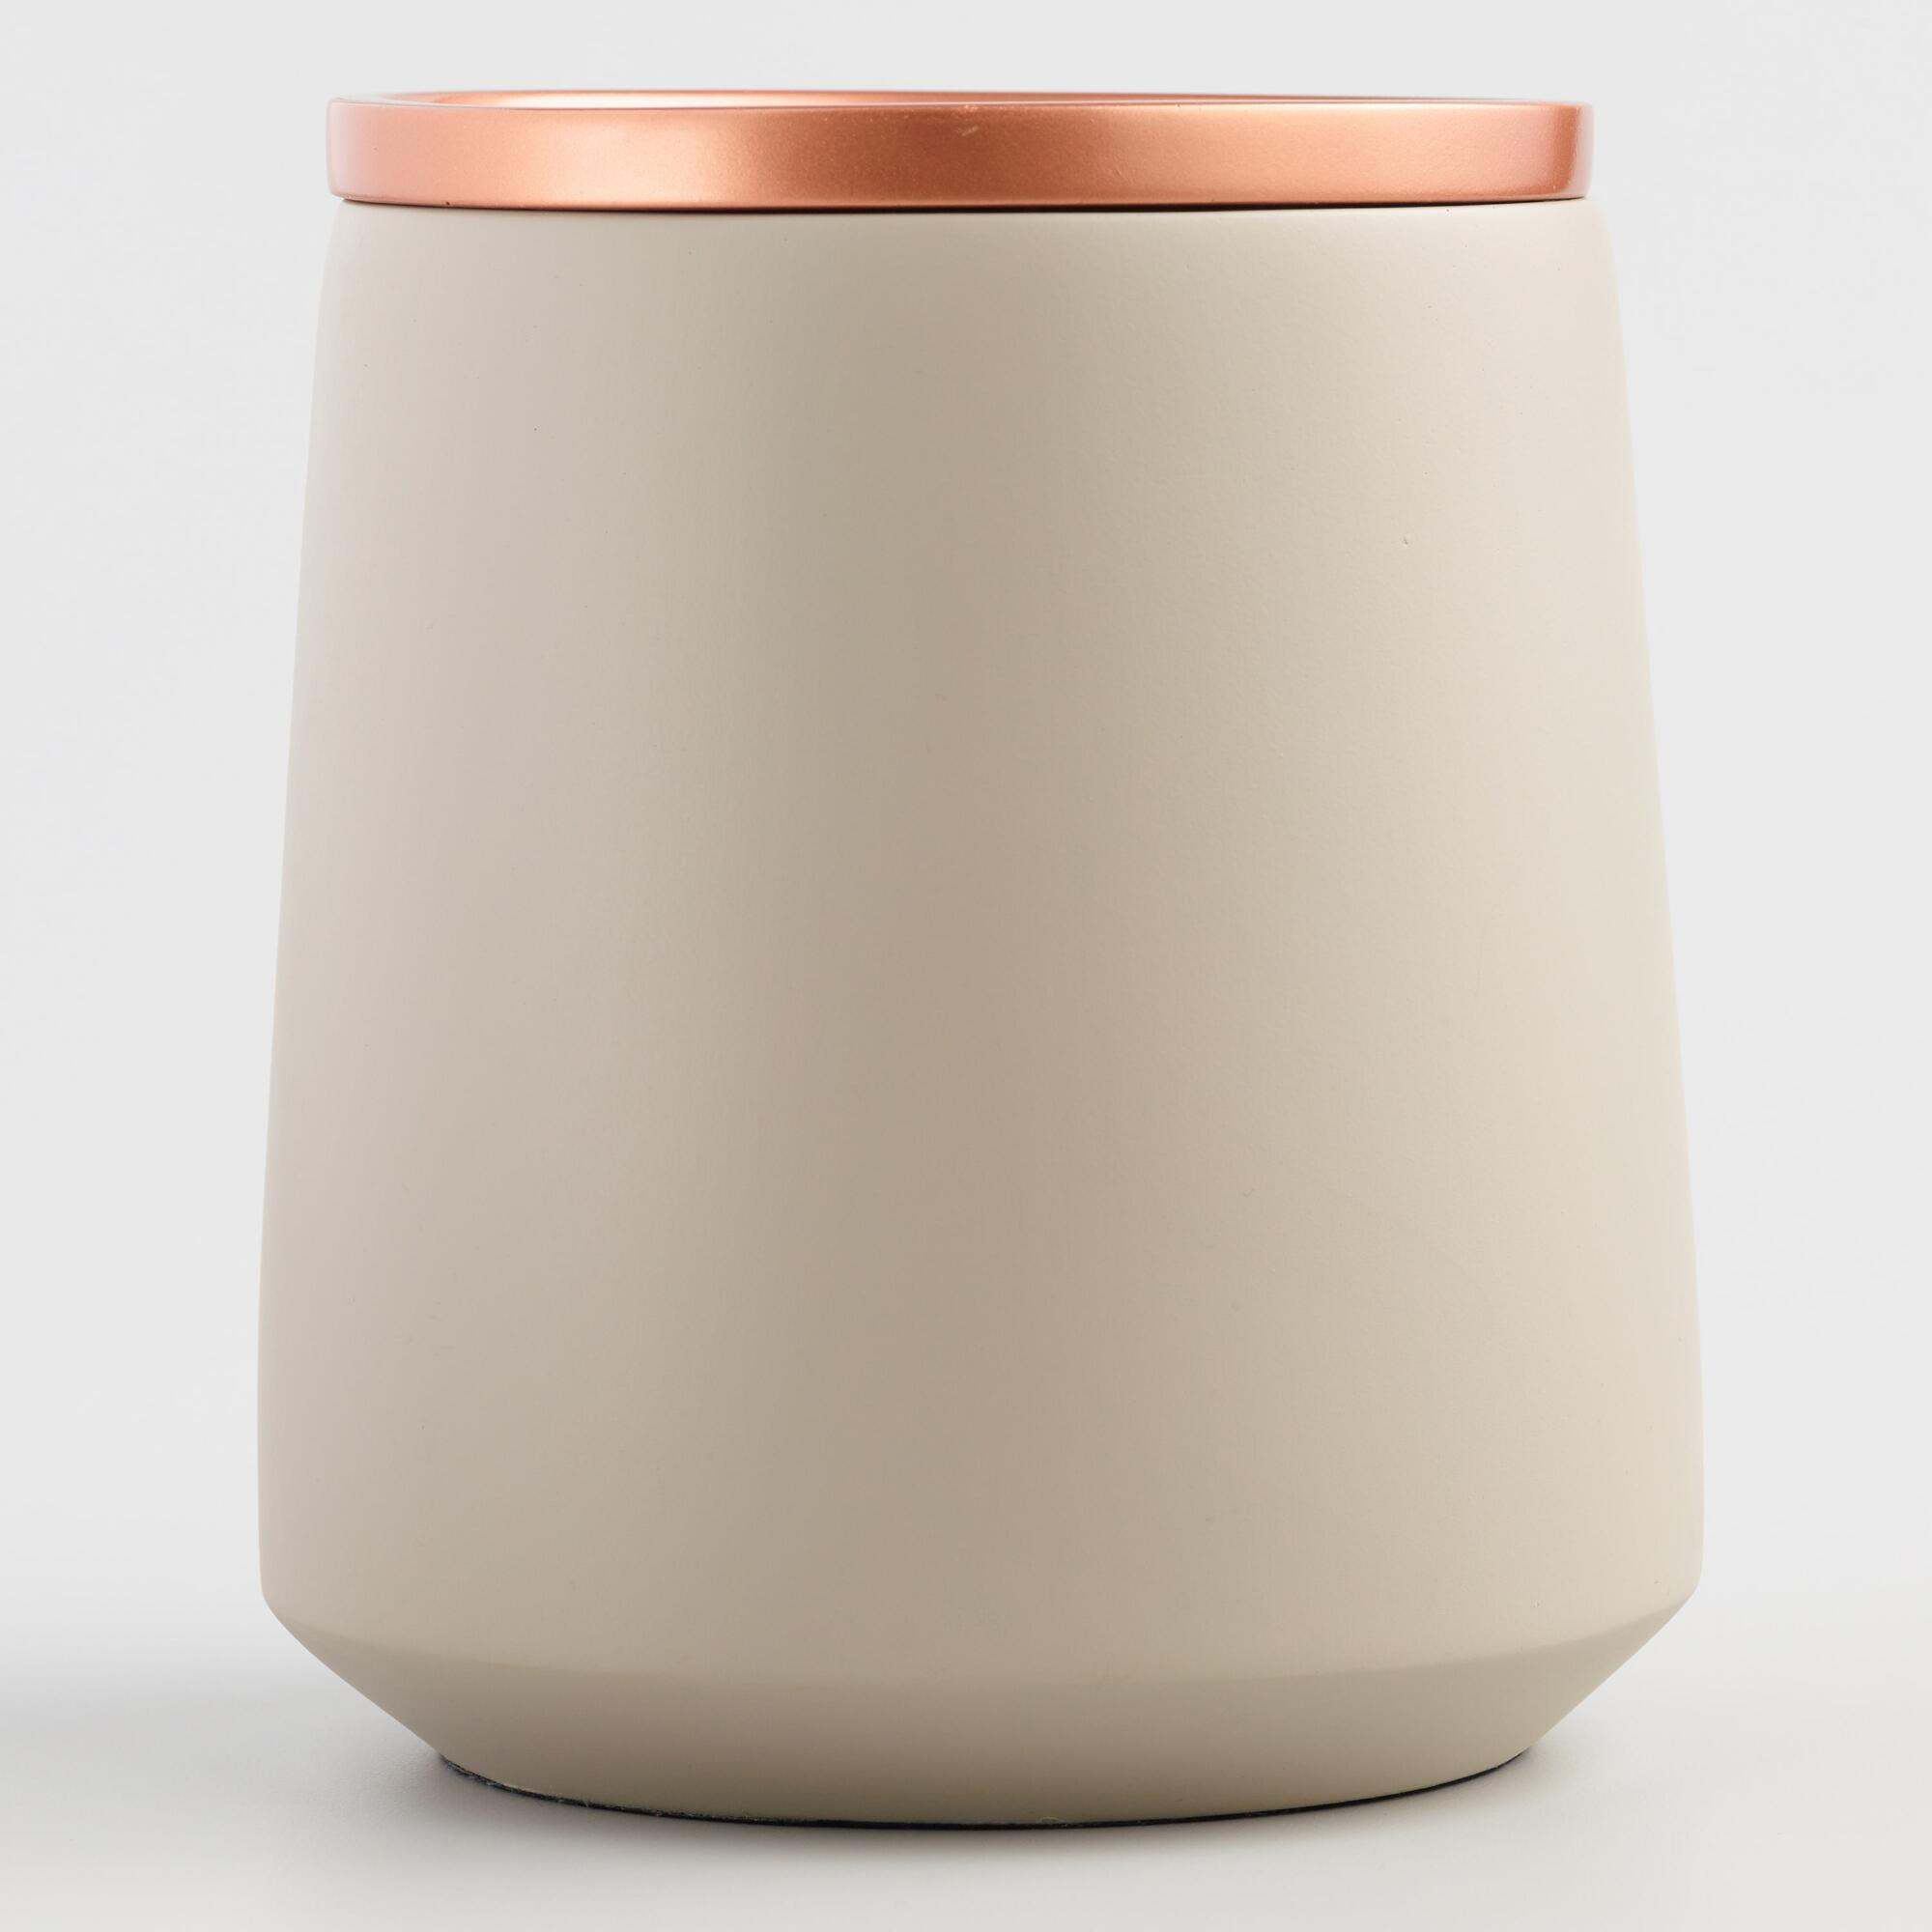 Large Gray Ceramic Storage Canister with Copper Lid by World Market